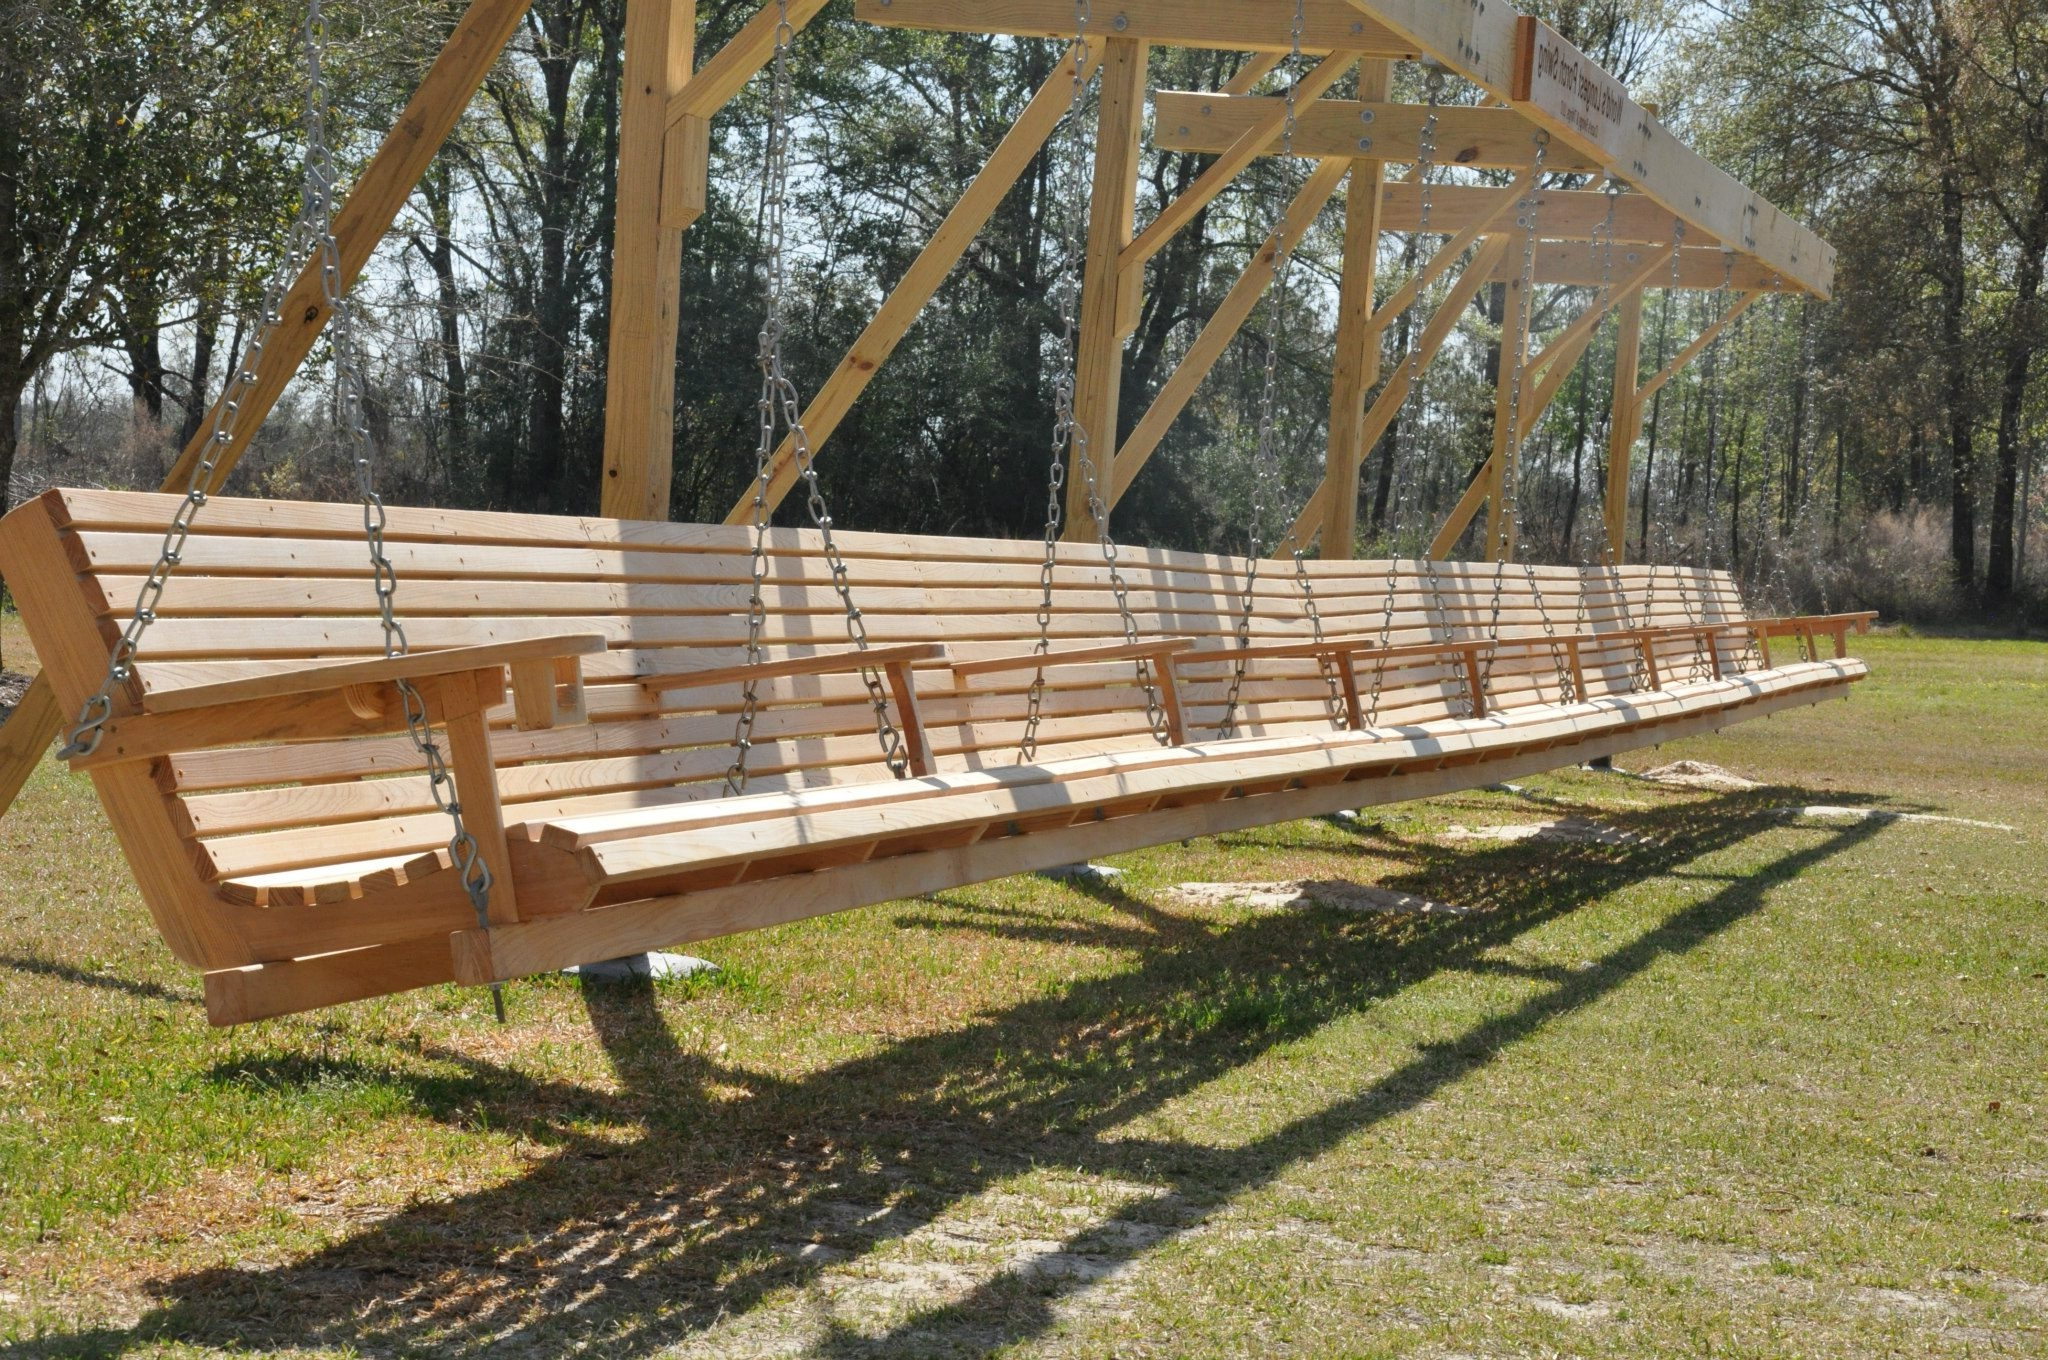 Wooden Porch Swing Stand Plans Regarding Famous Porch Swings With Stand (View 21 of 30)